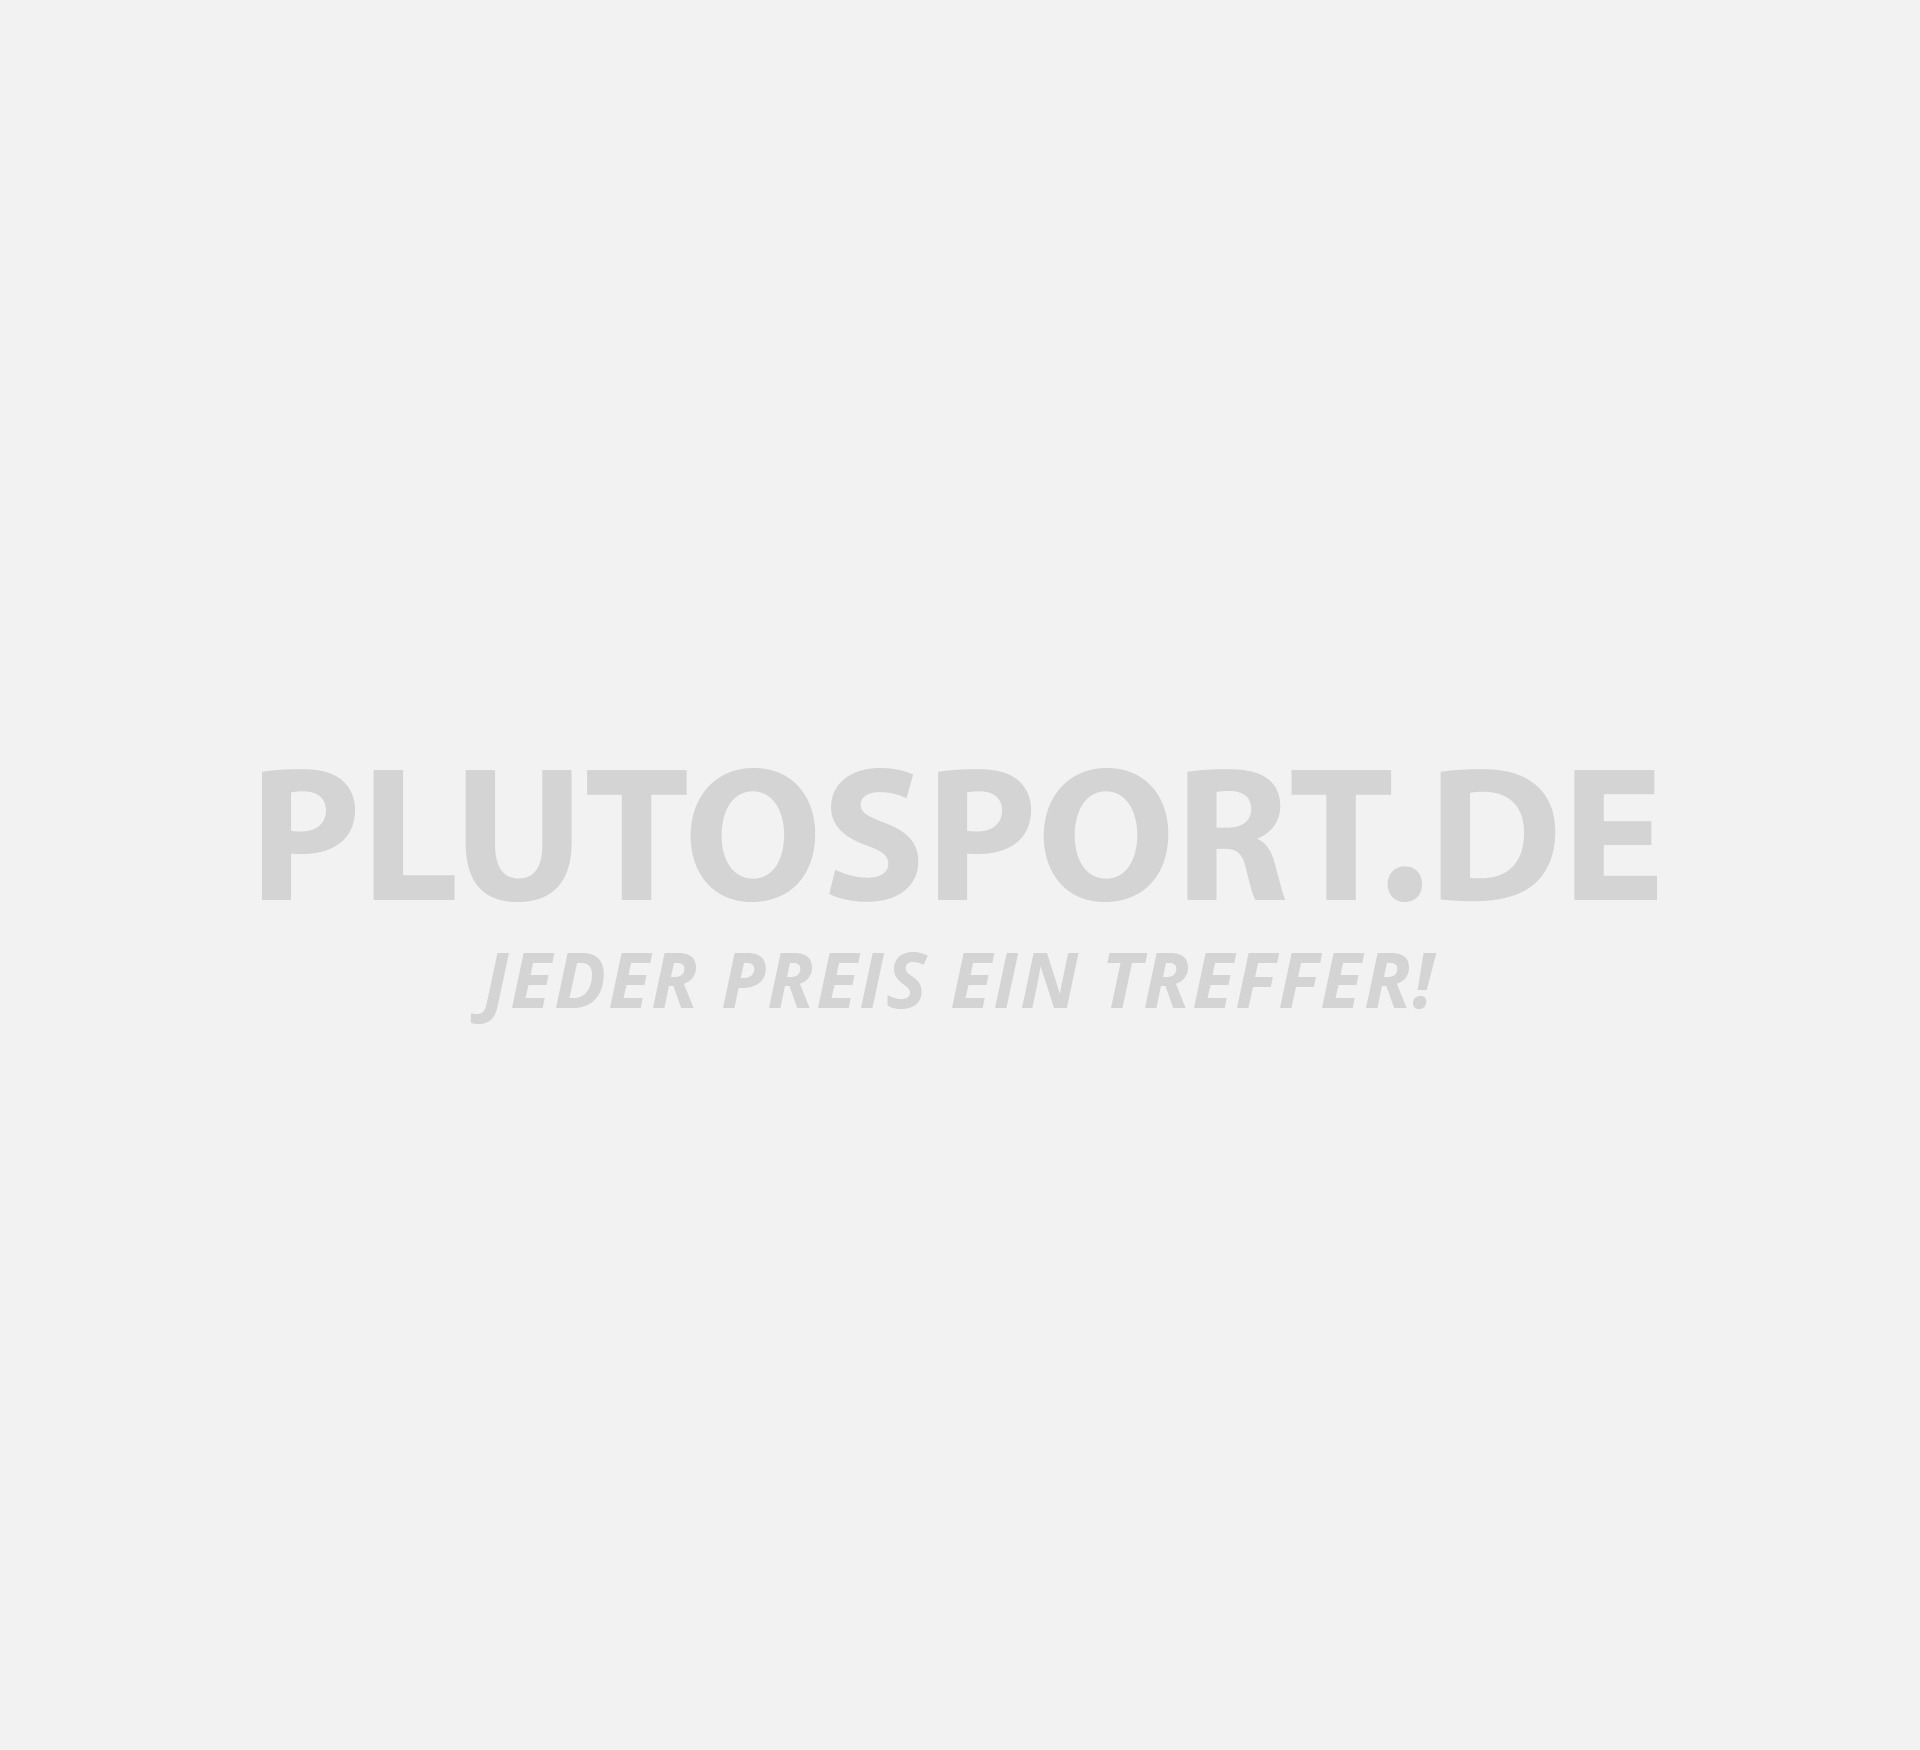 essimo judoanzug yuko junior f r kinder kleidung kleidung kampfsport sportarten plutosport. Black Bedroom Furniture Sets. Home Design Ideas